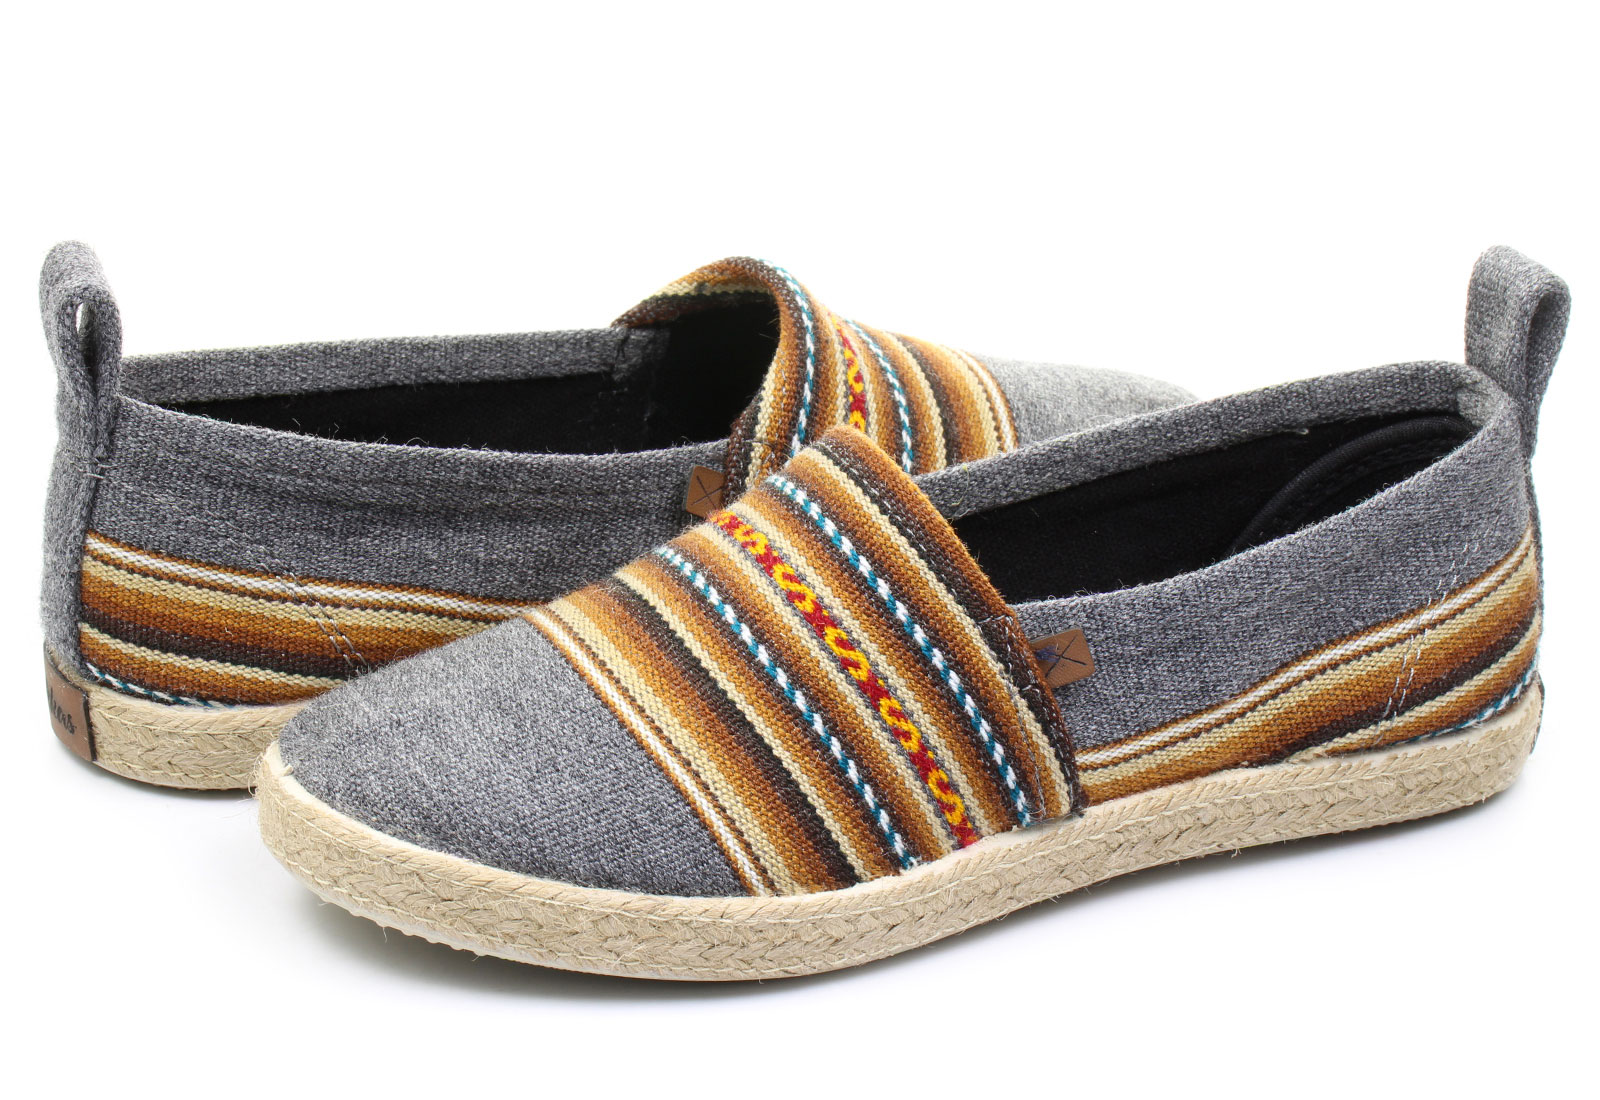 Espadrilles and Slippers